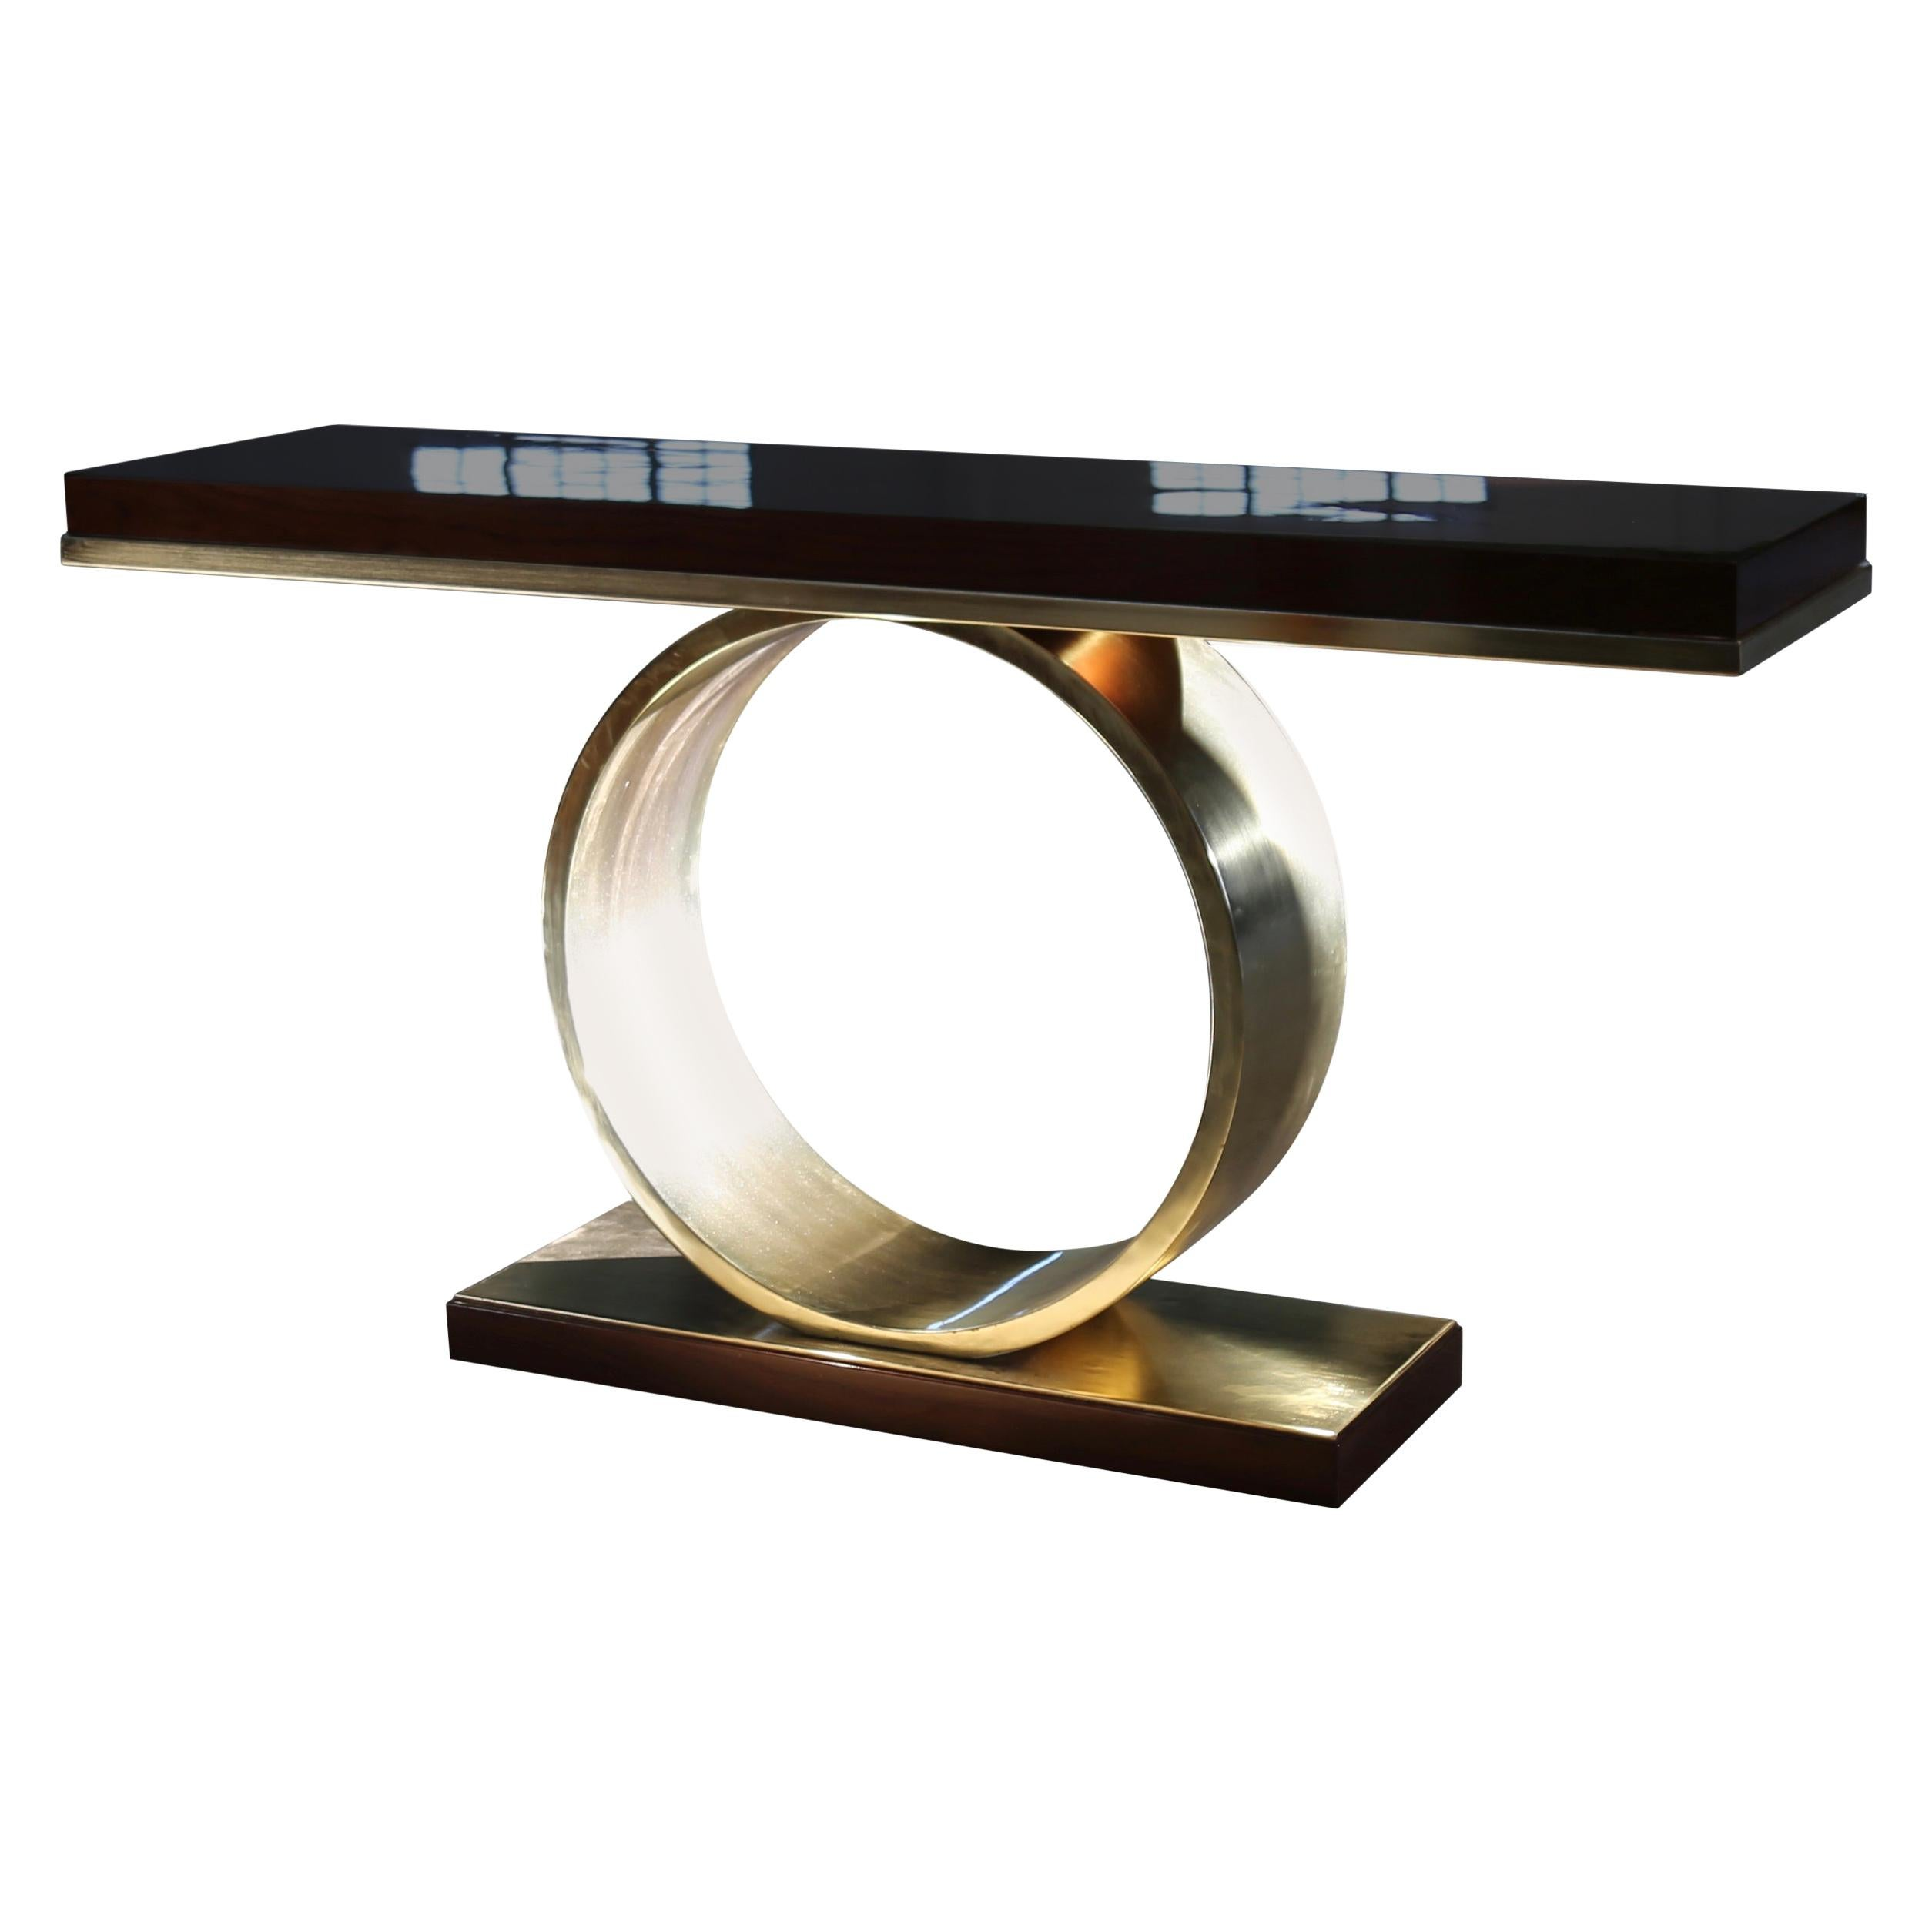 Donte Polished Bronze and Wood Console Table from Costantini